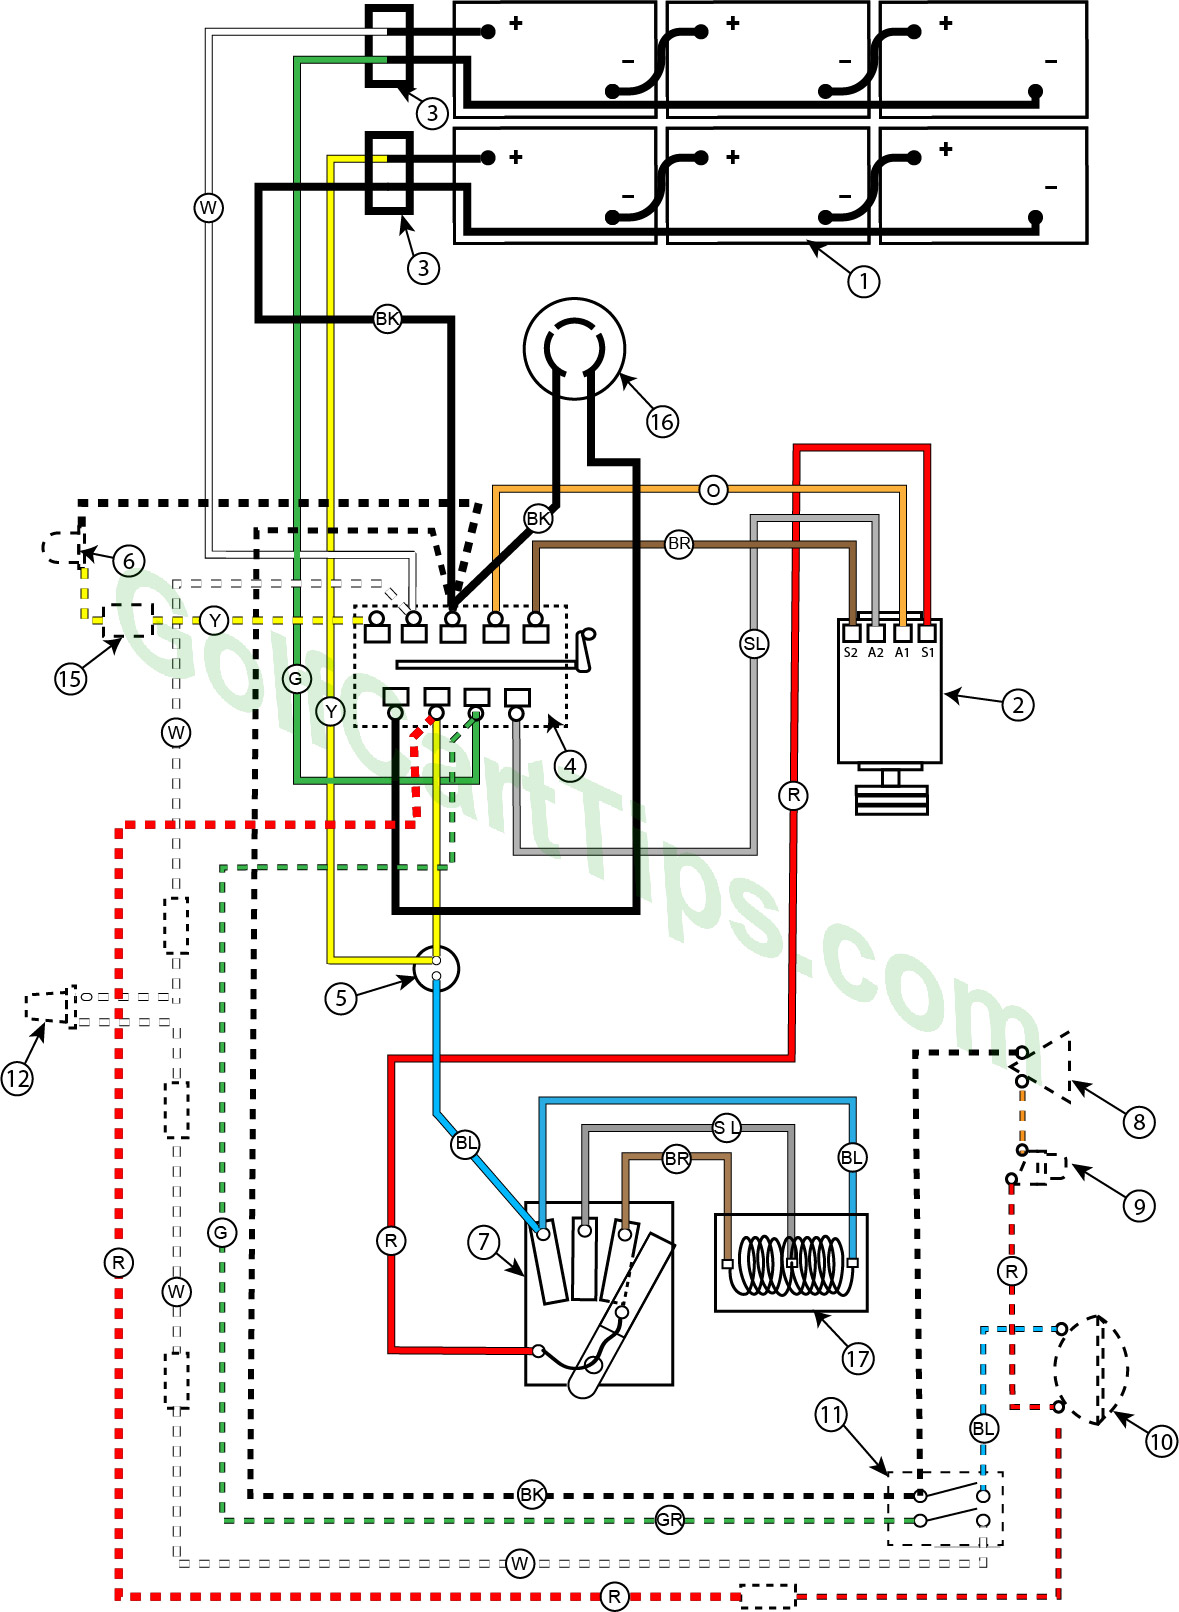 hight resolution of cushman 36 volt wiring diagram wiring diagram option ezgo 36 volt wiring diagram 36 volt wiring diagram